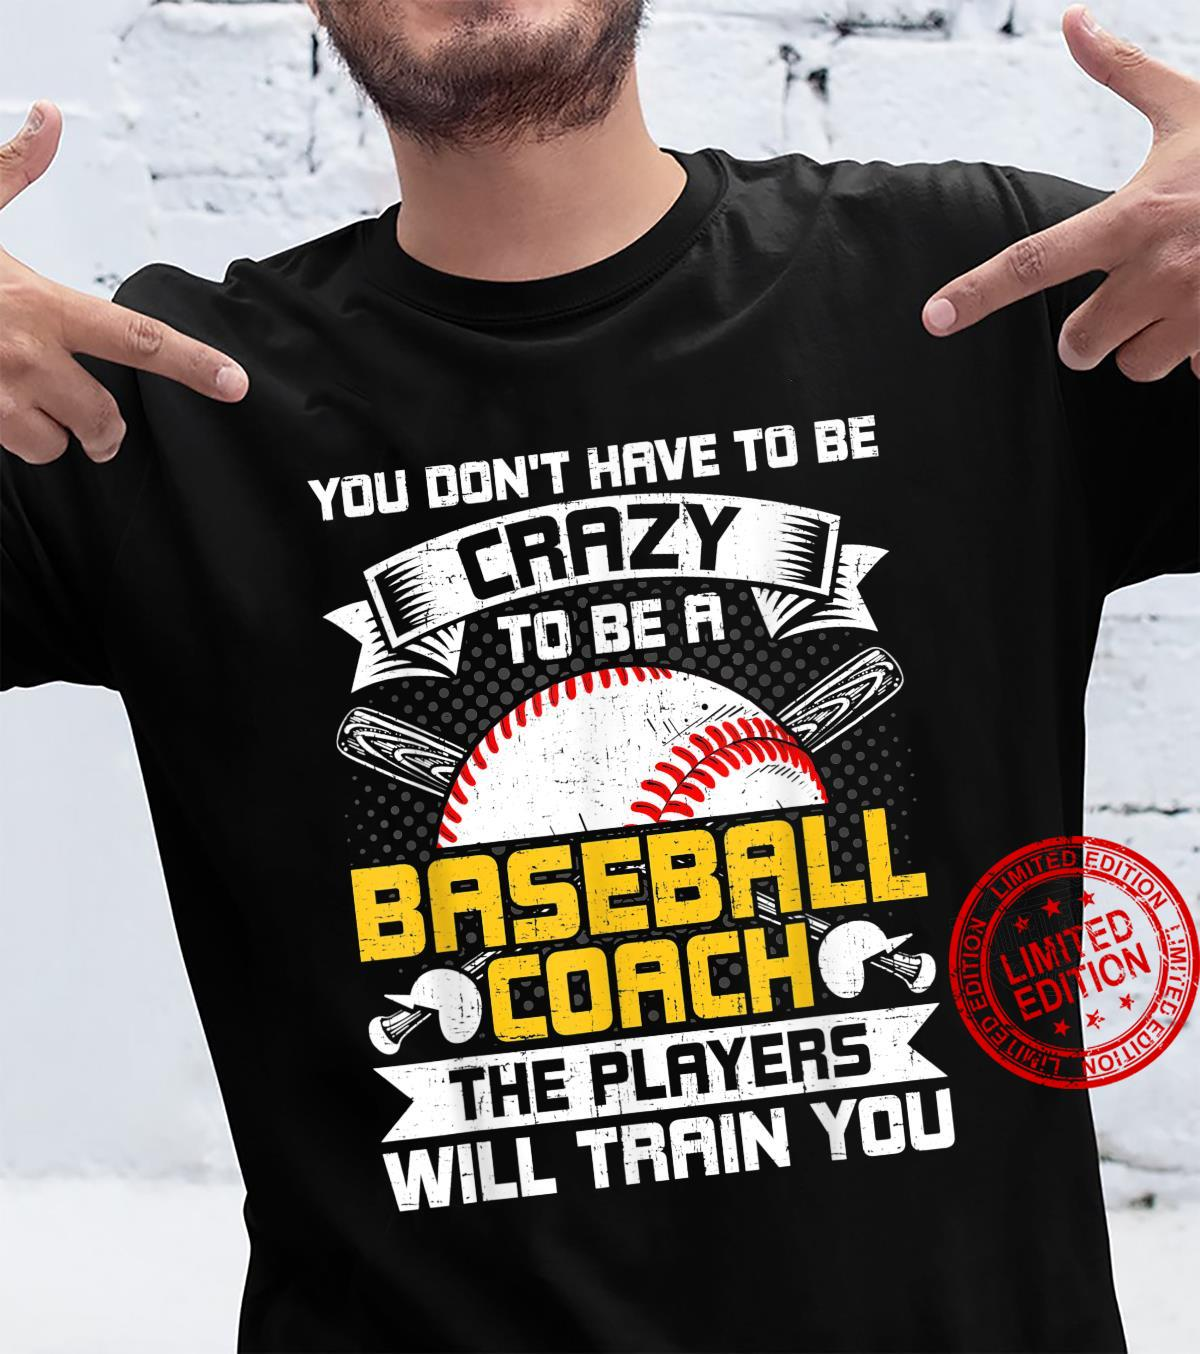 You don't have to be crazy to be a baseball coach Shirt